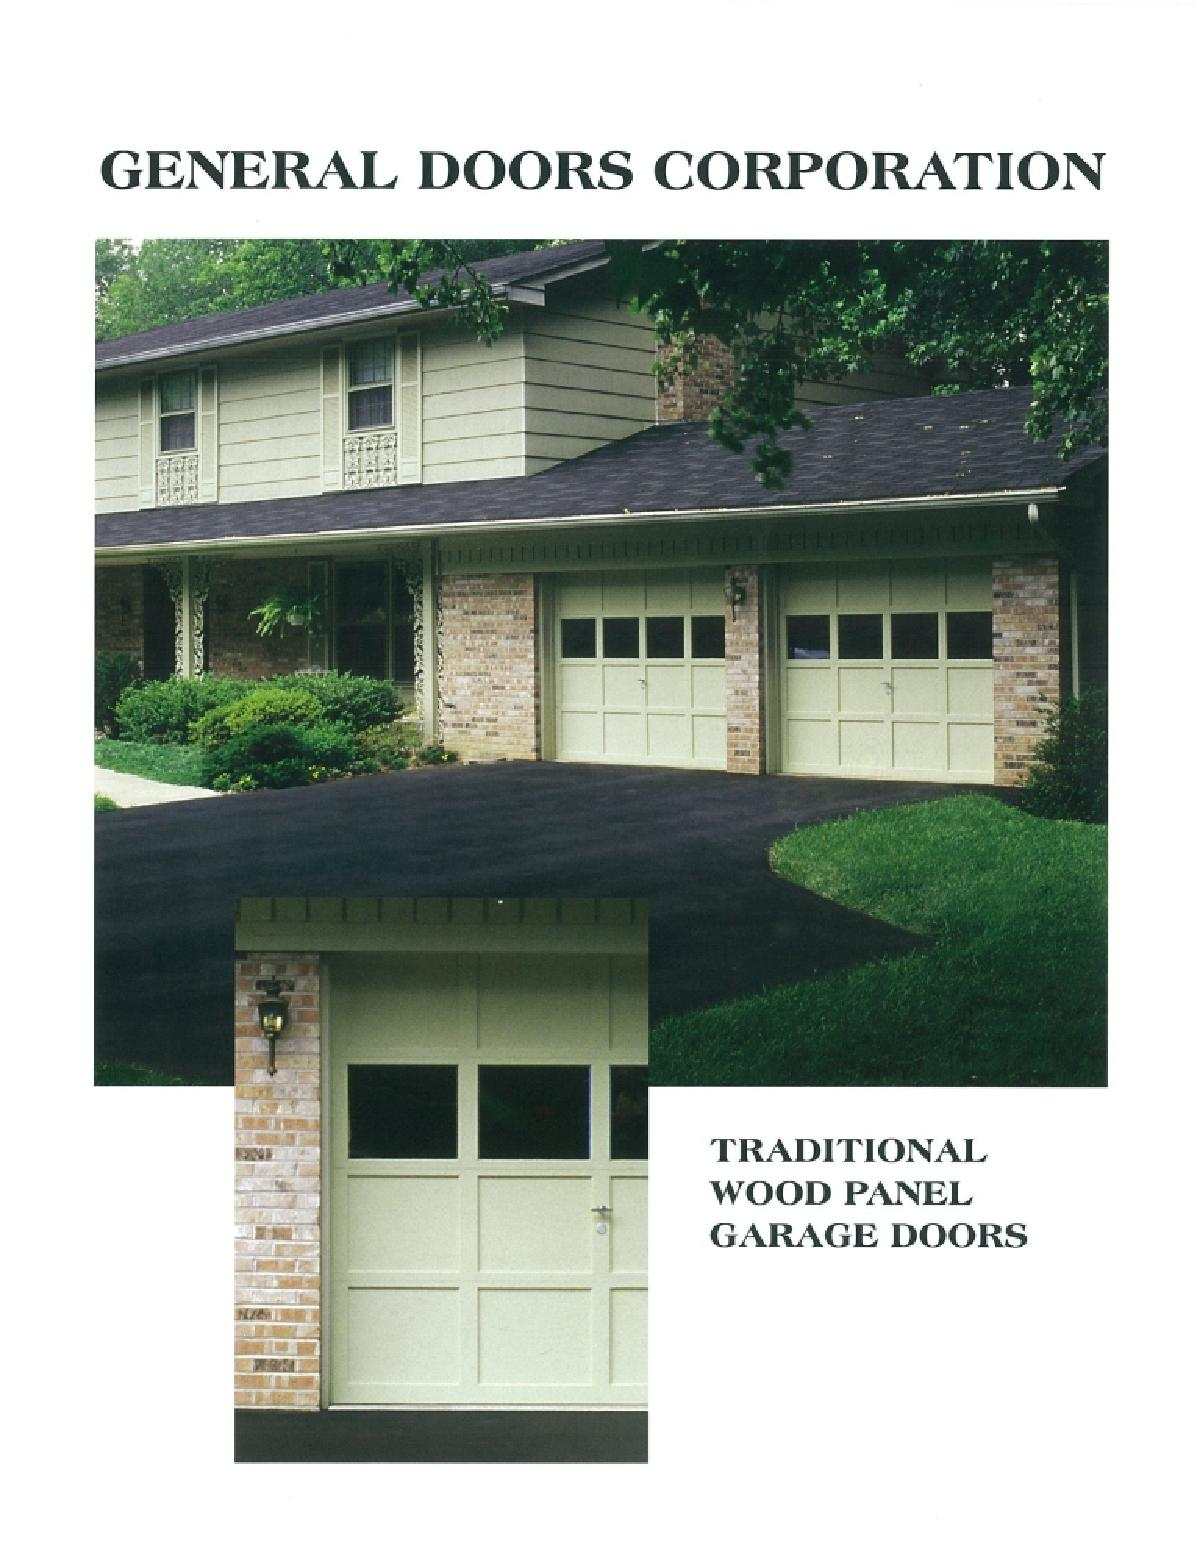 Traditional Wood Panel Garage Doors By General